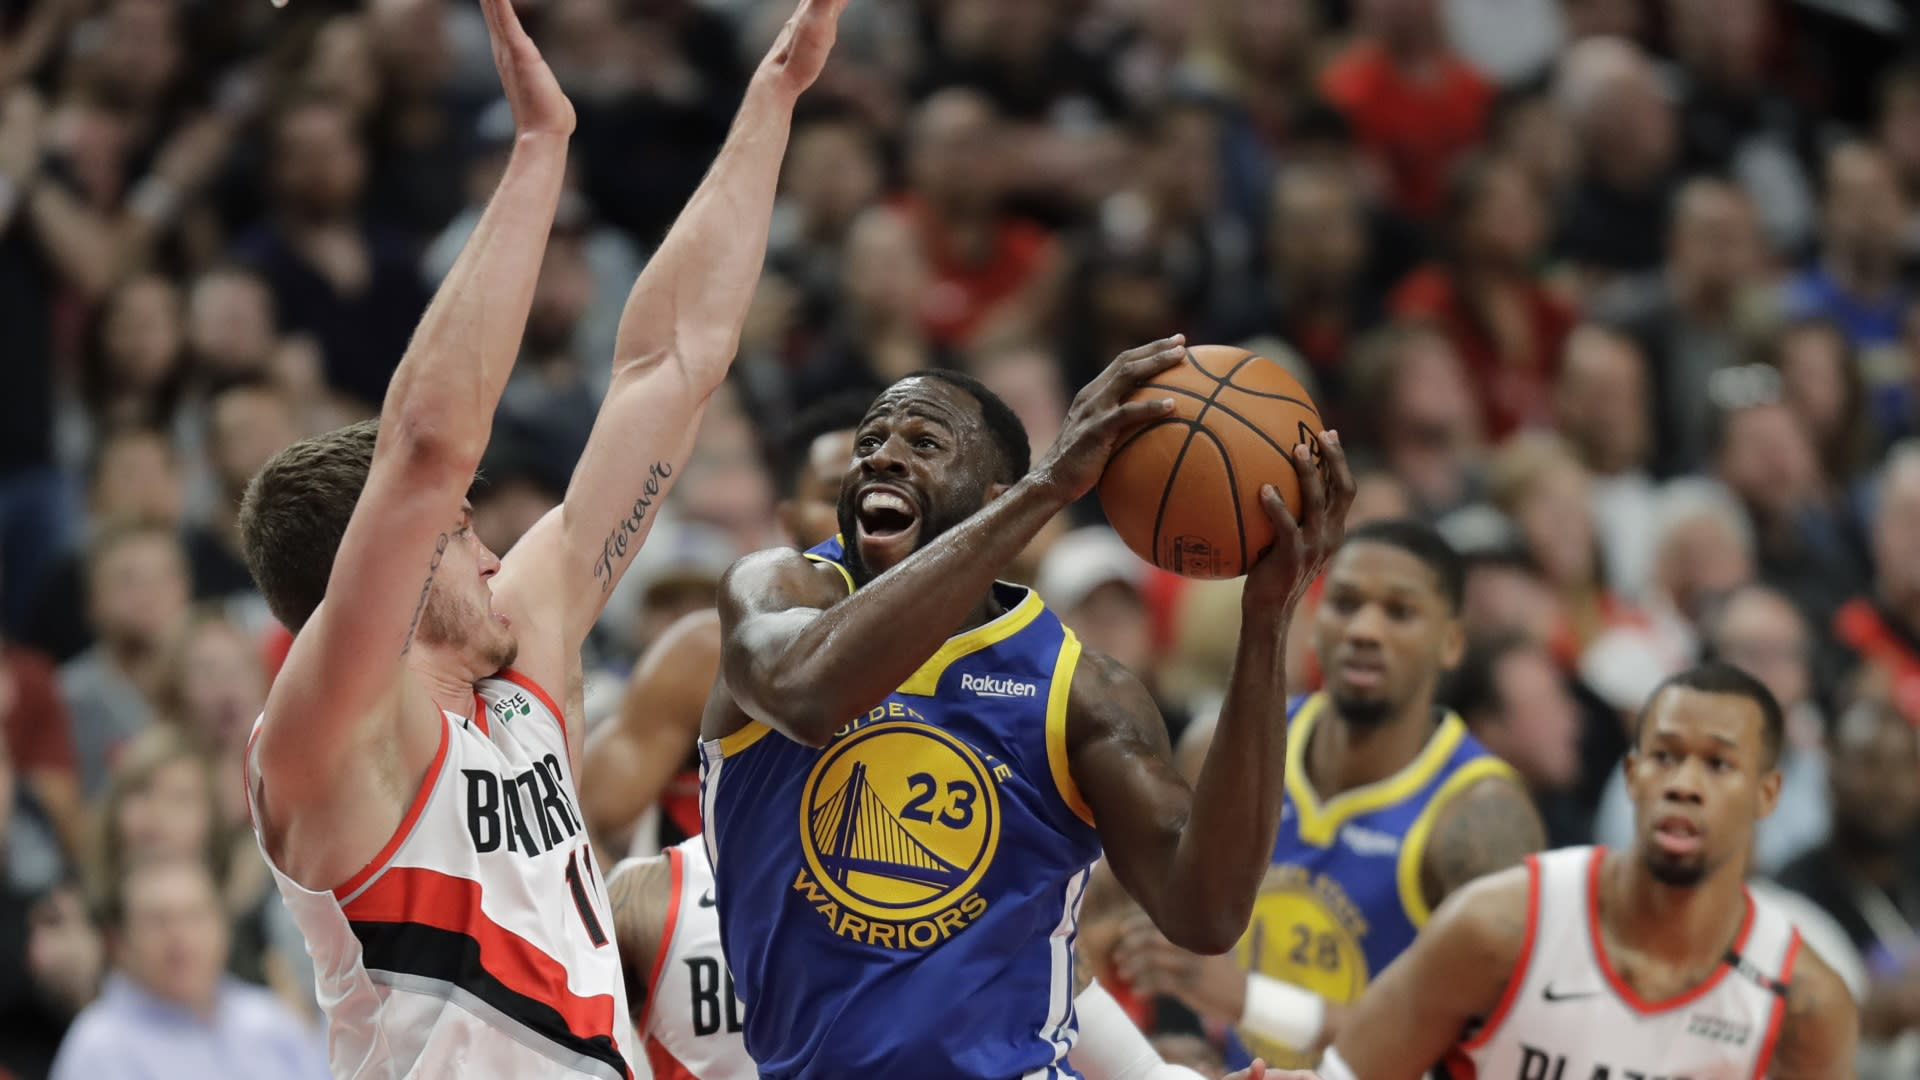 b81233d79f8 Warriors takeaways: What we learned in 110-99 Game 3 win over Blazers